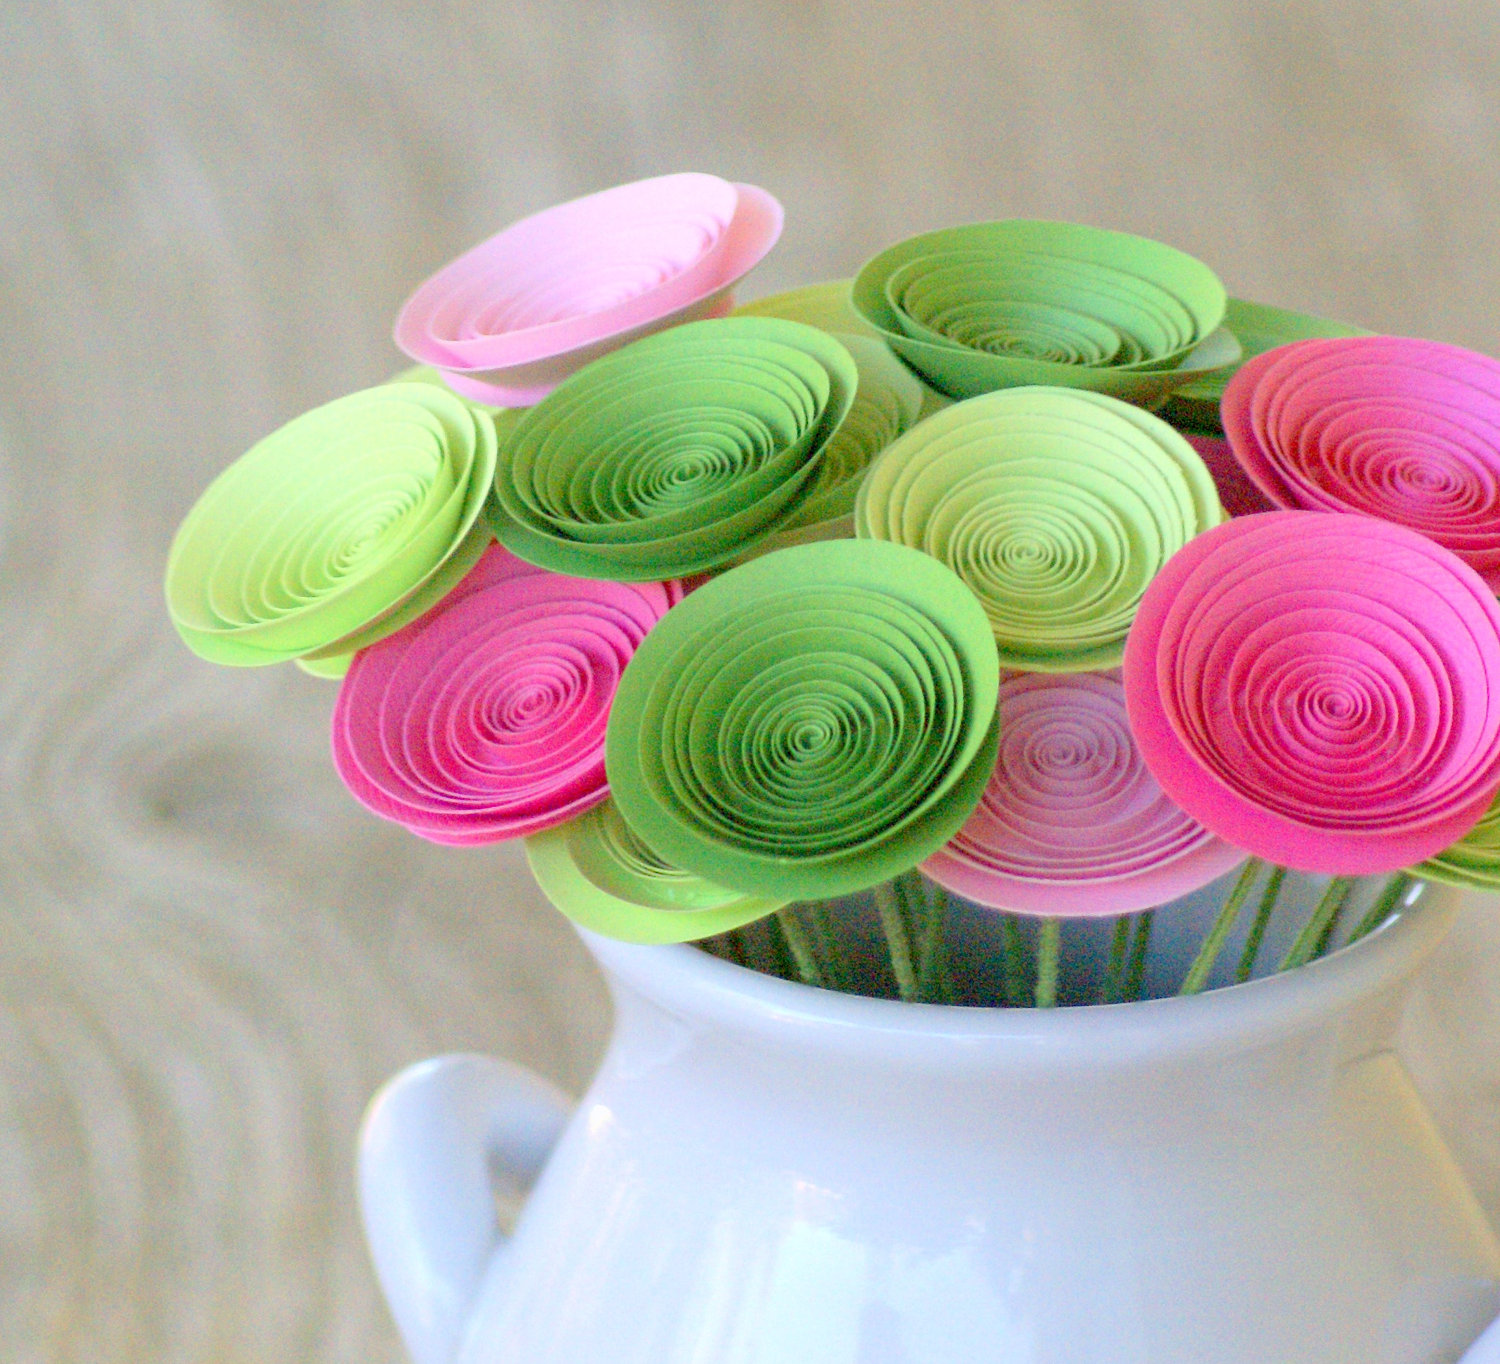 Made Flower Paper Image Collections Fresh Lotus Flowers